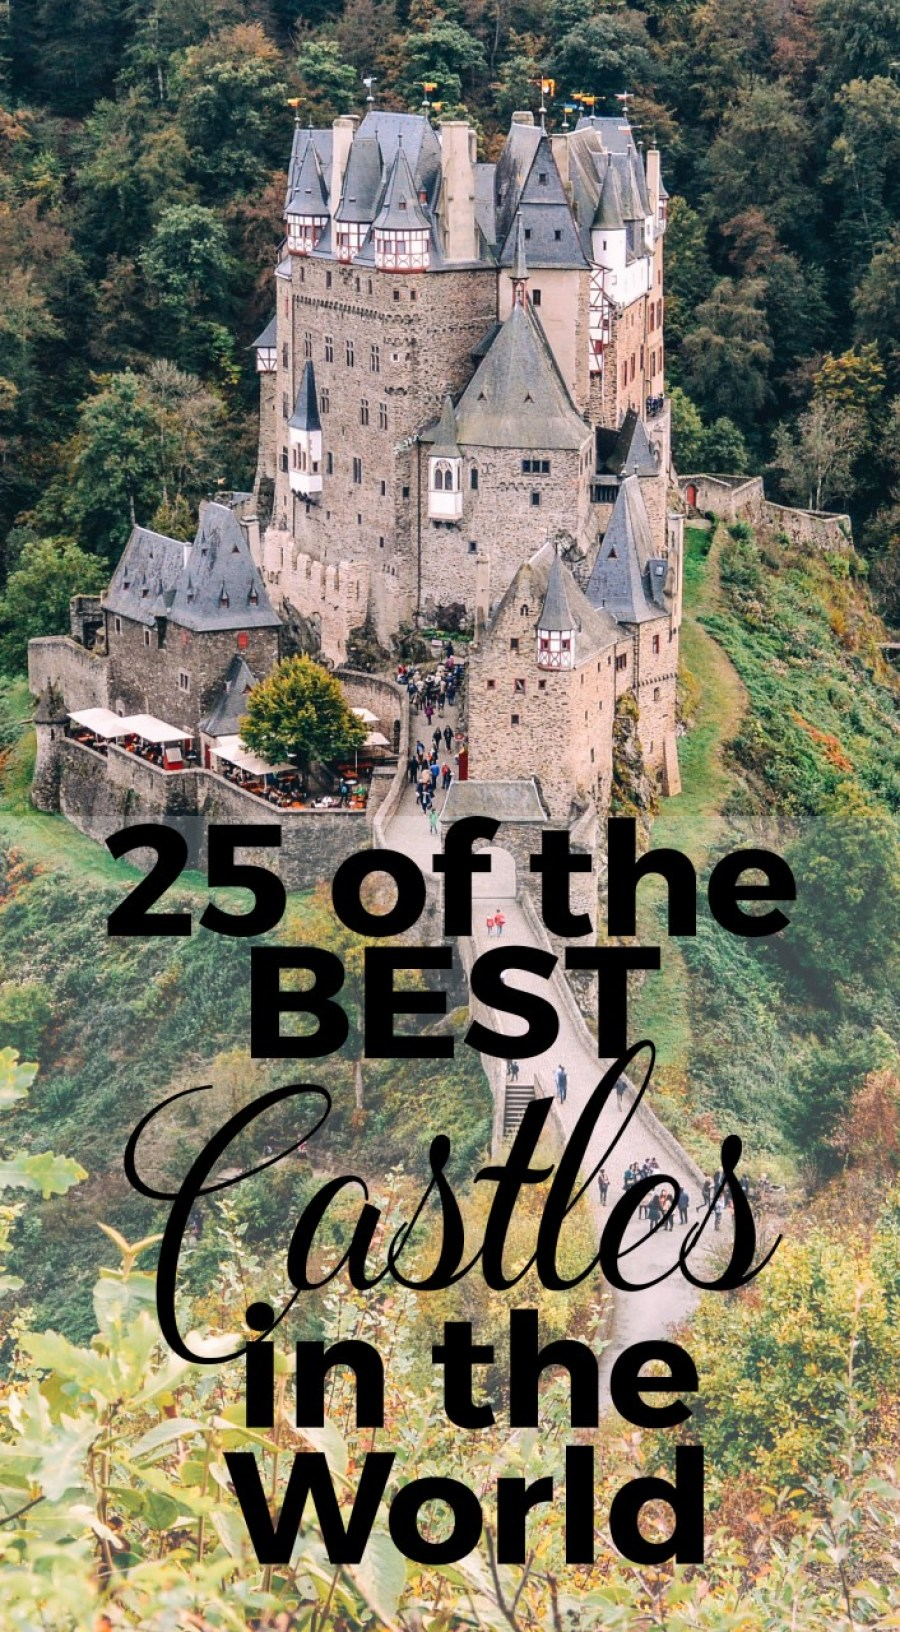 25 of The Best Castles in the World - full guide to the castles